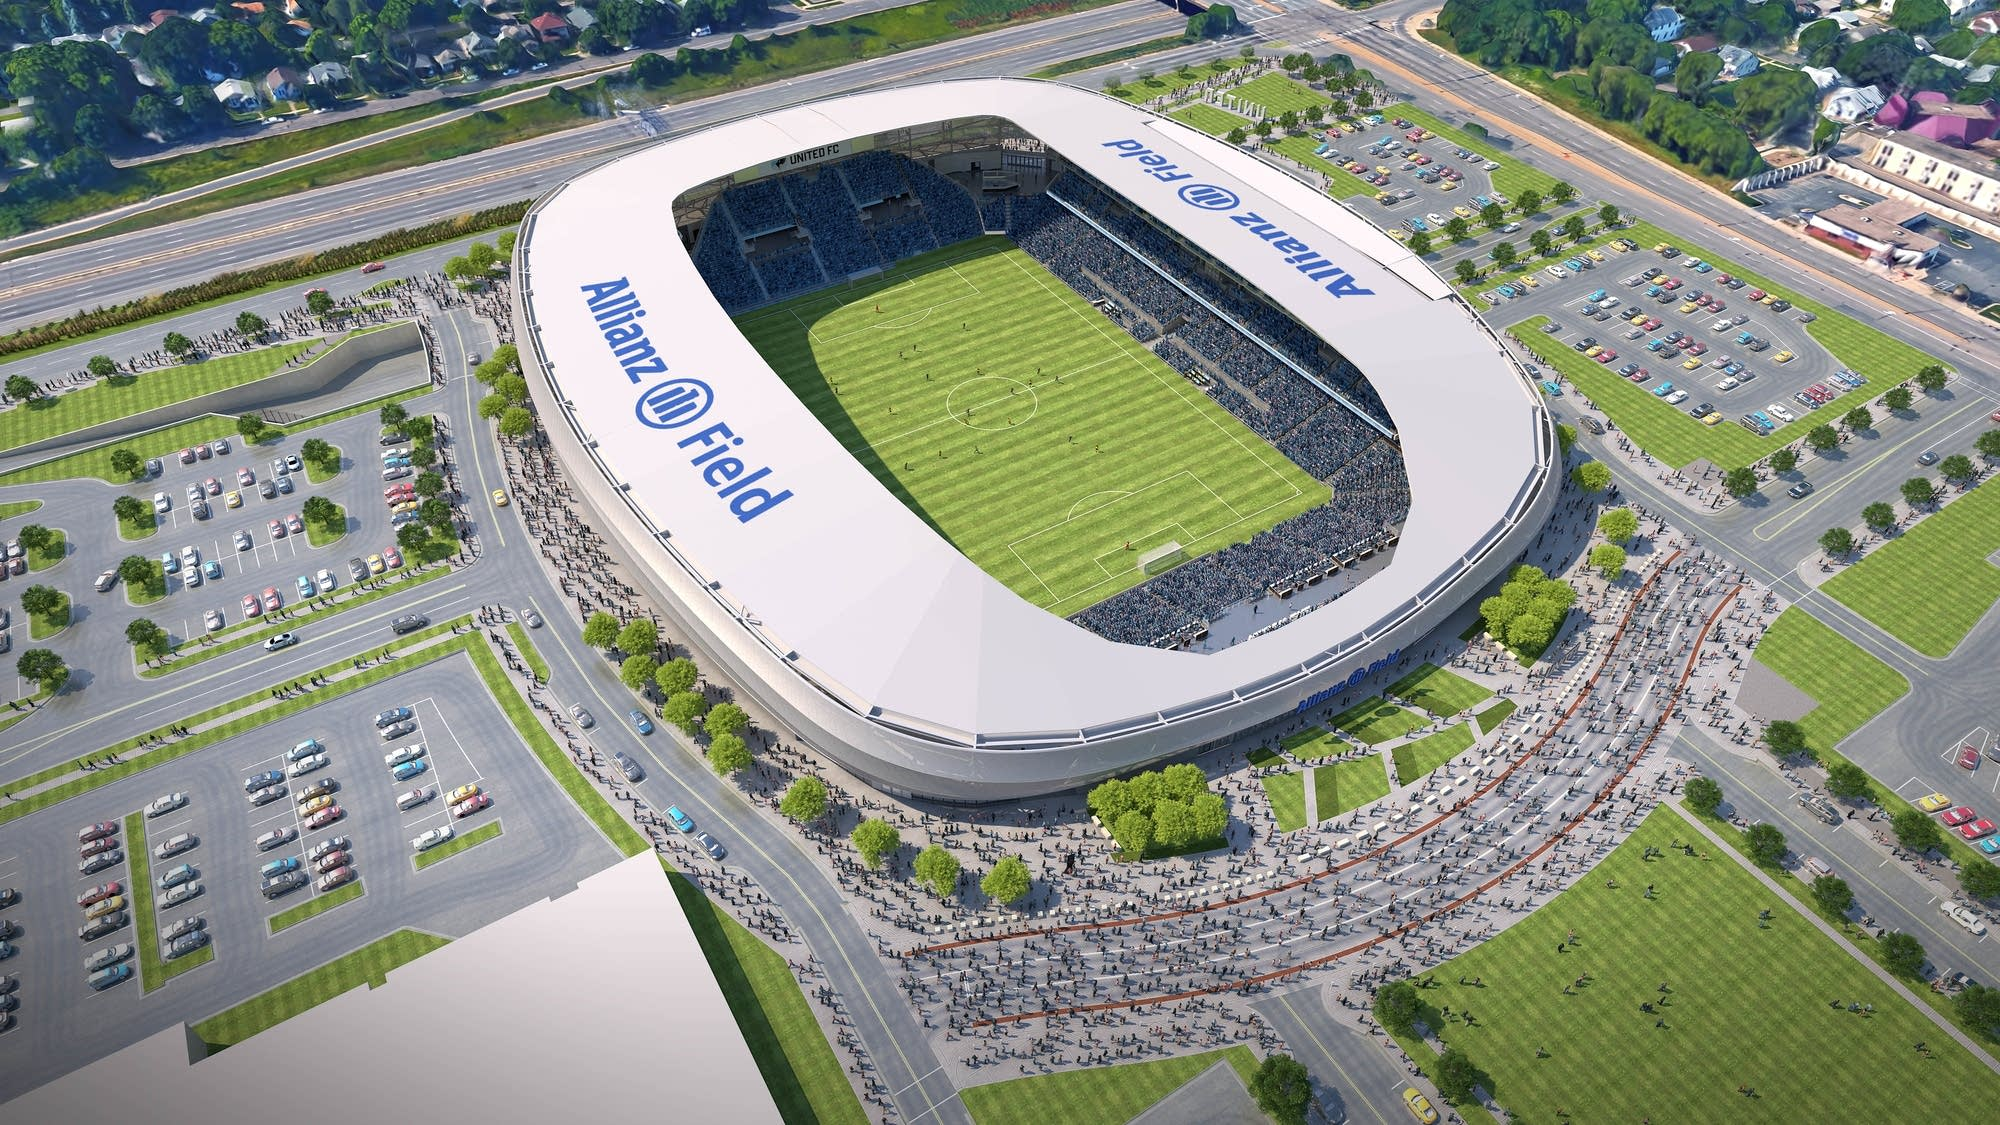 Loon's new soccer stadium will be Allianz Field